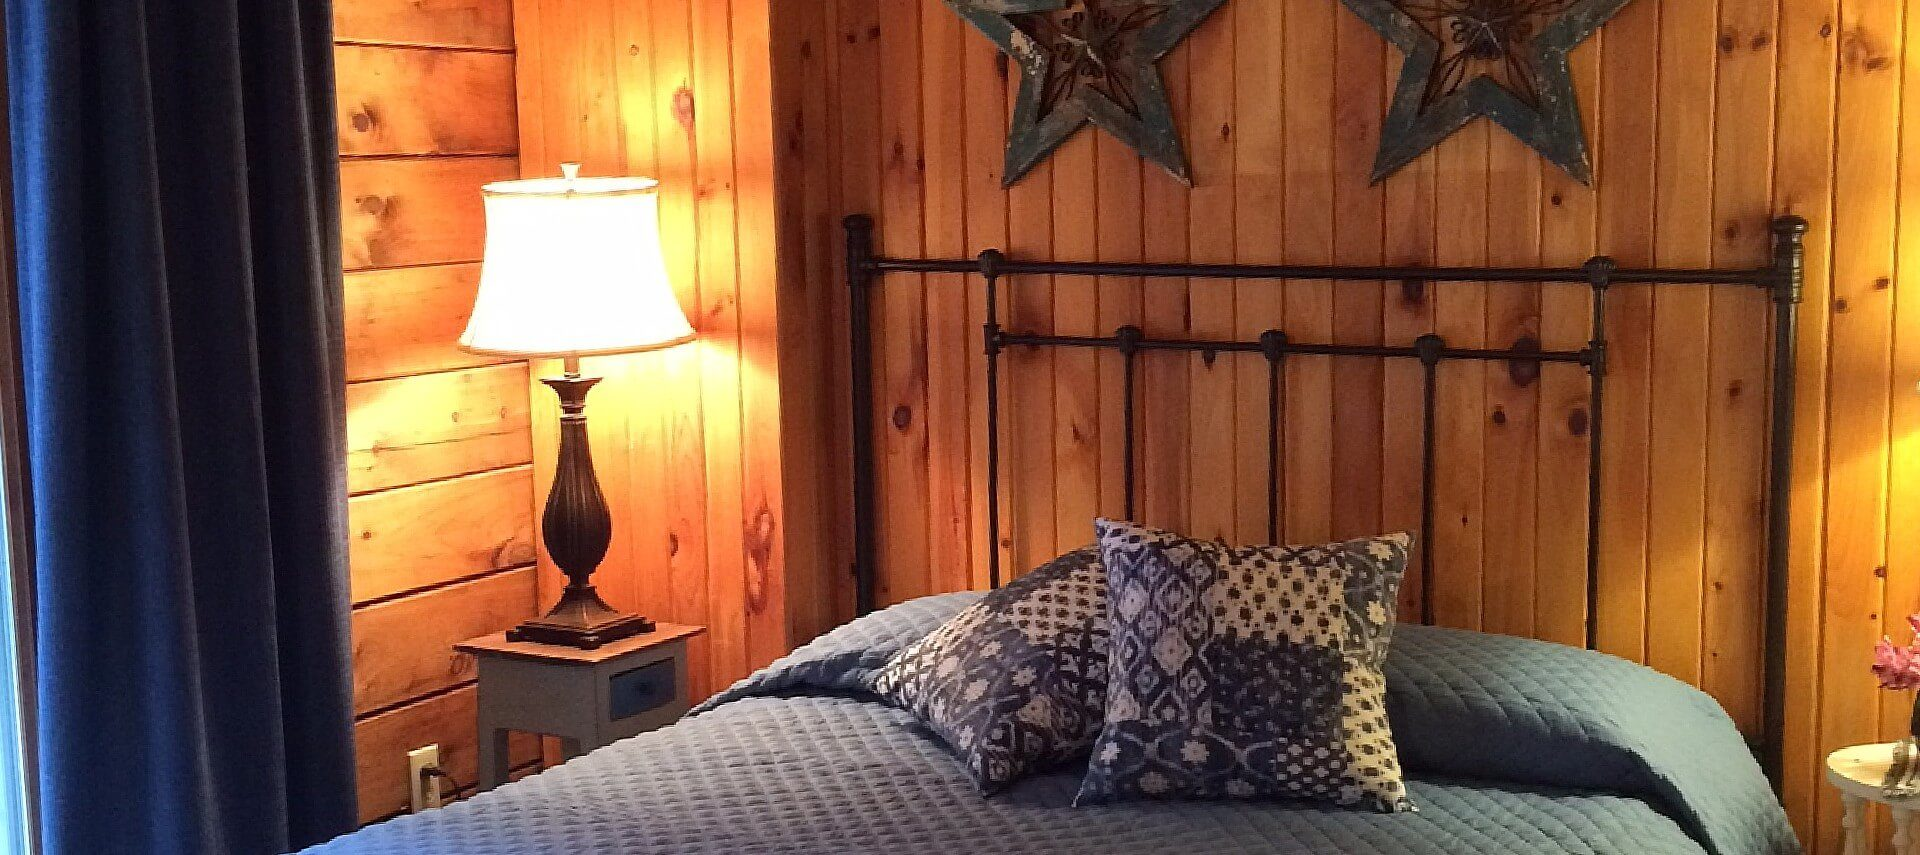 Queen bed with black wrought iron headboard and blue quilt, two side tables with lamps in a room with wood paneled walls